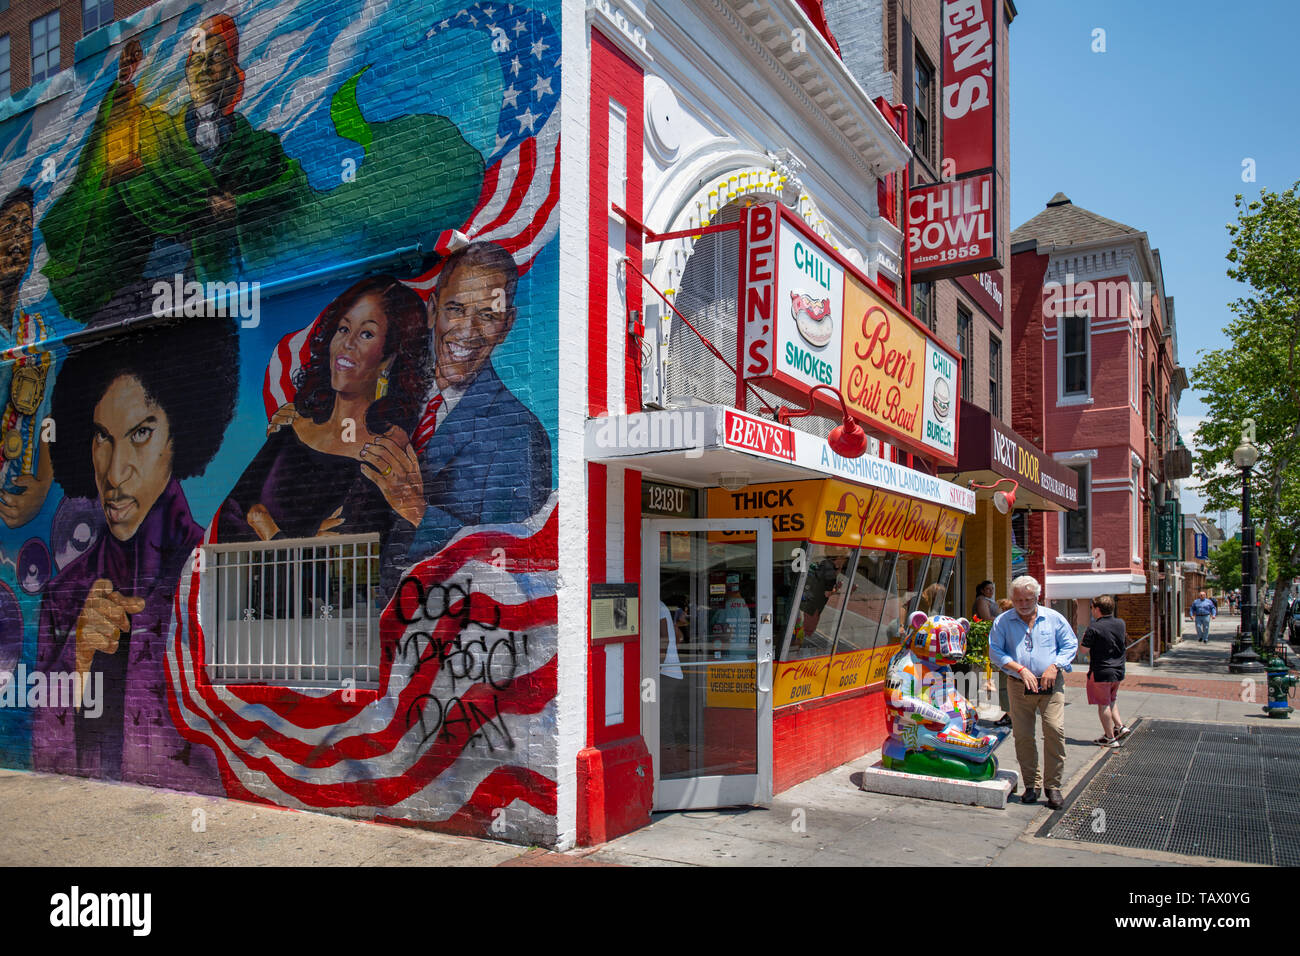 usa-washington-dc-bens-chili-bowl-a-dc-landmark-restaurant-on-the-u-street-corridor-famous-for-half-smokes-and-chili-TAX0YG.jpg